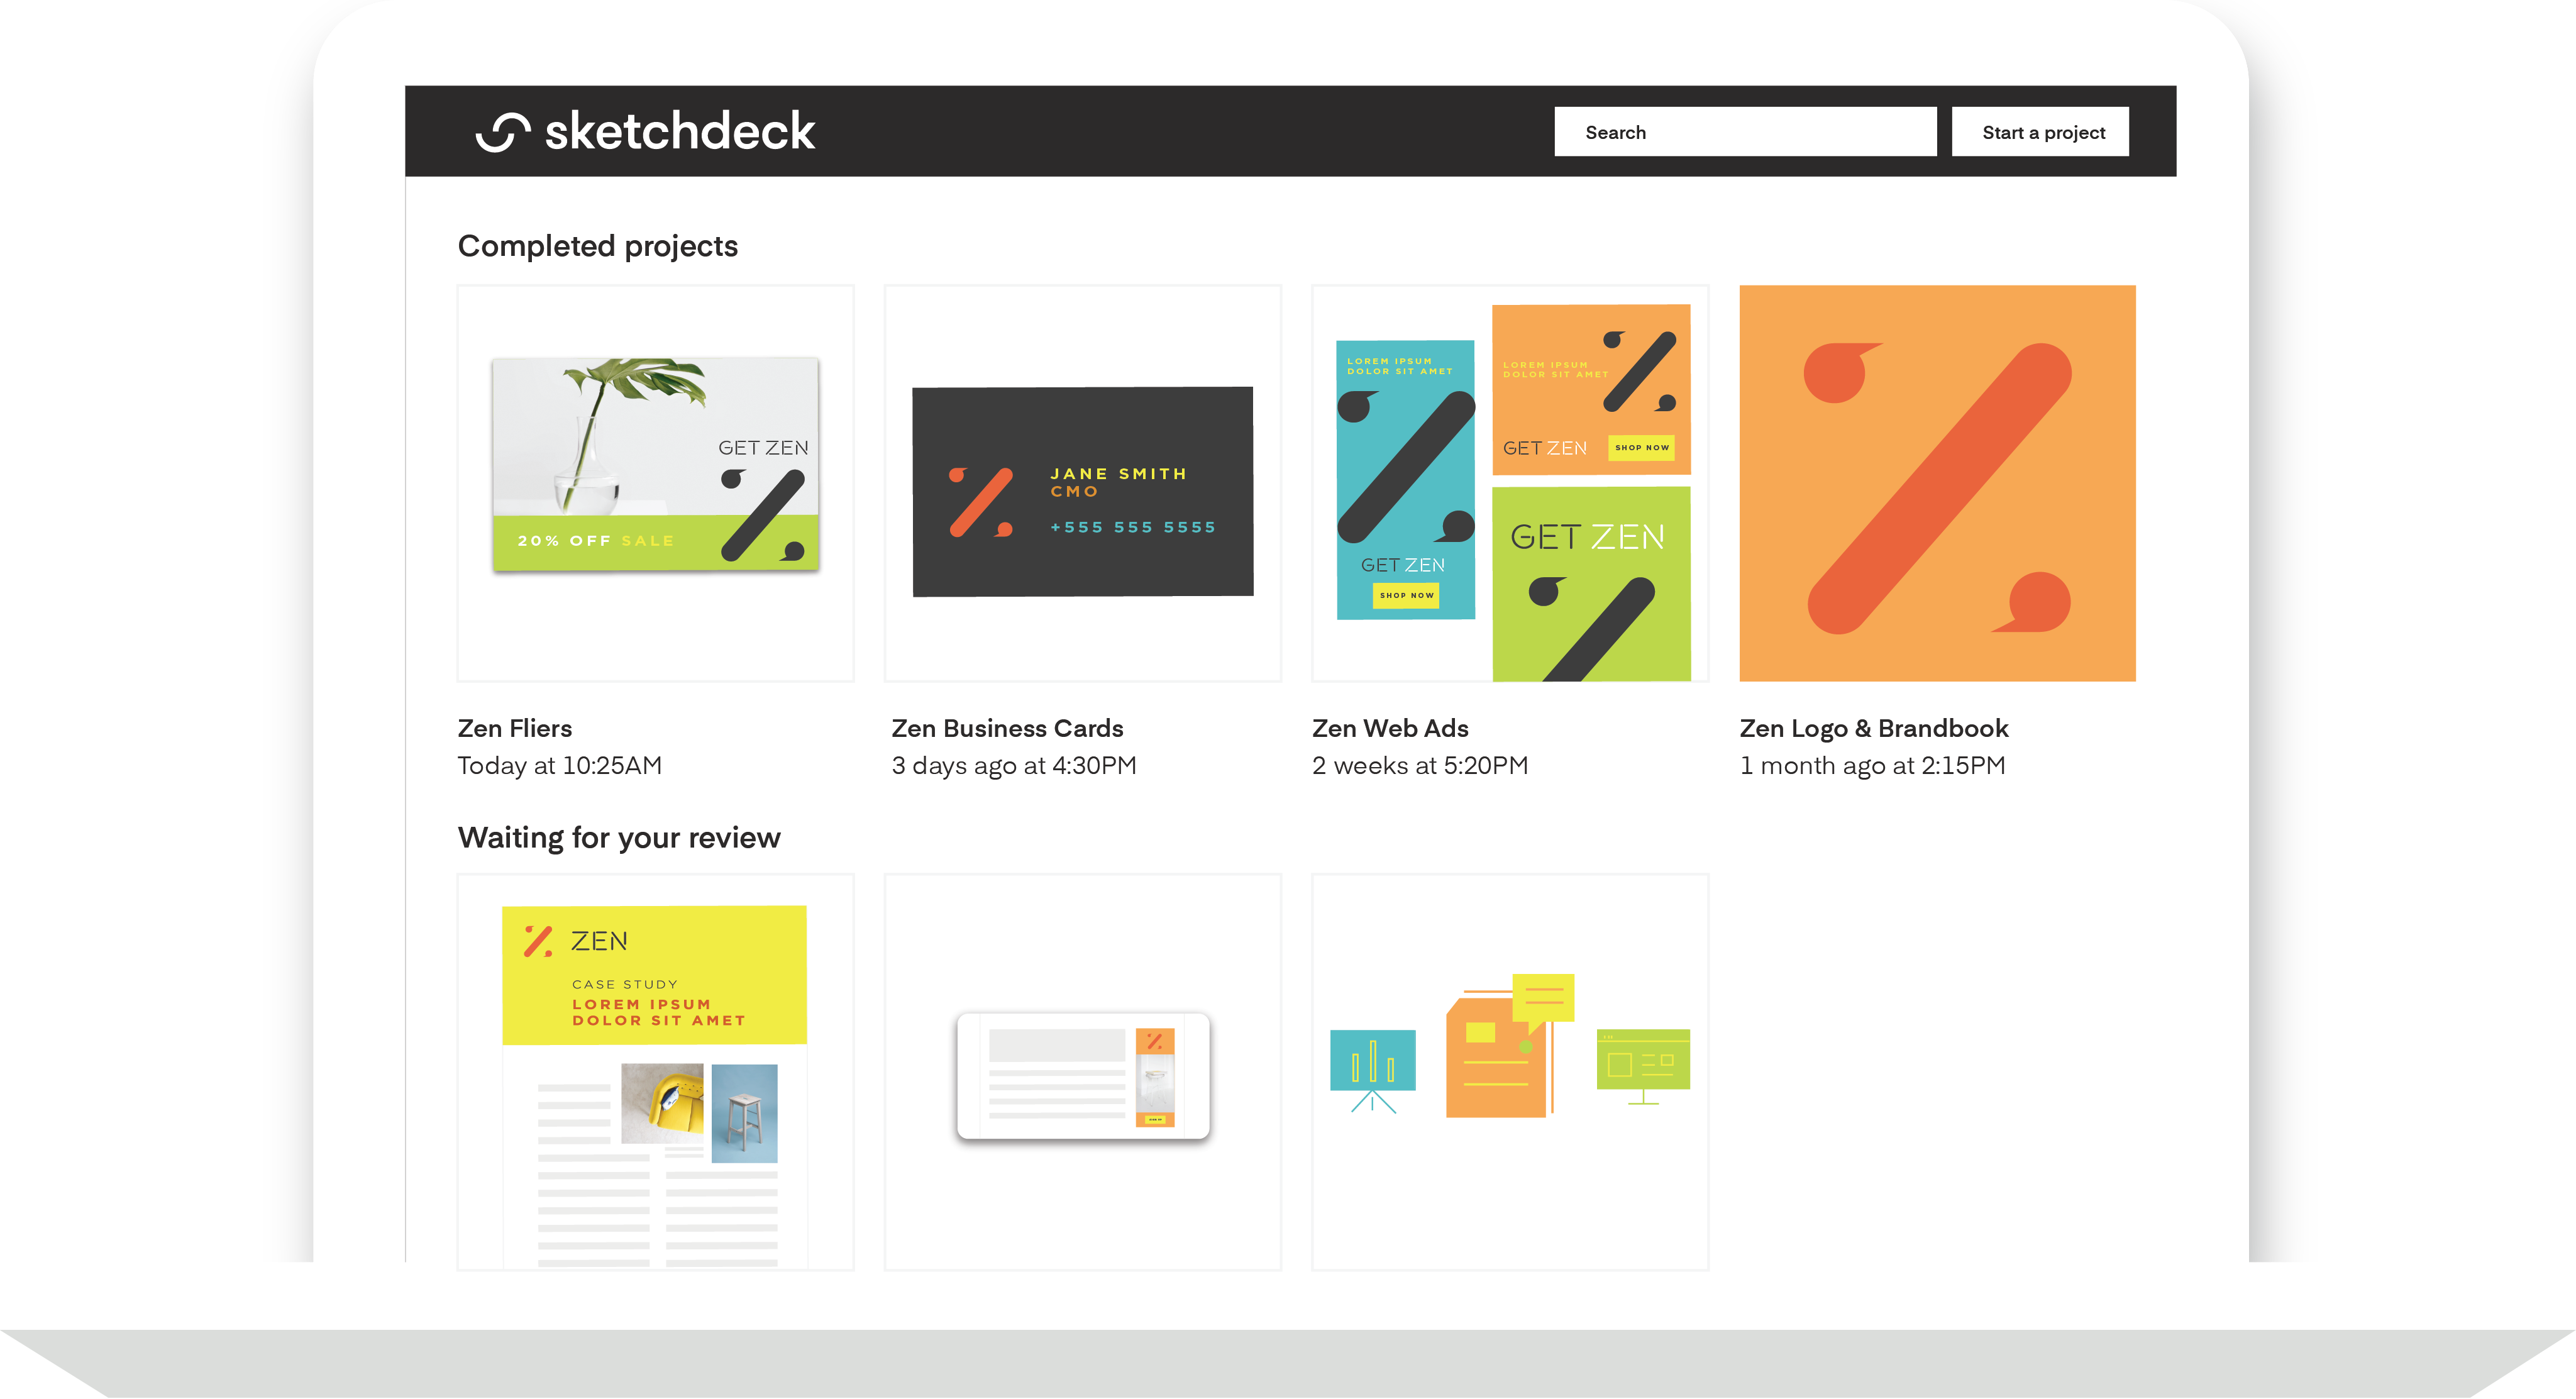 Mockup of the SketchDeck dashboard